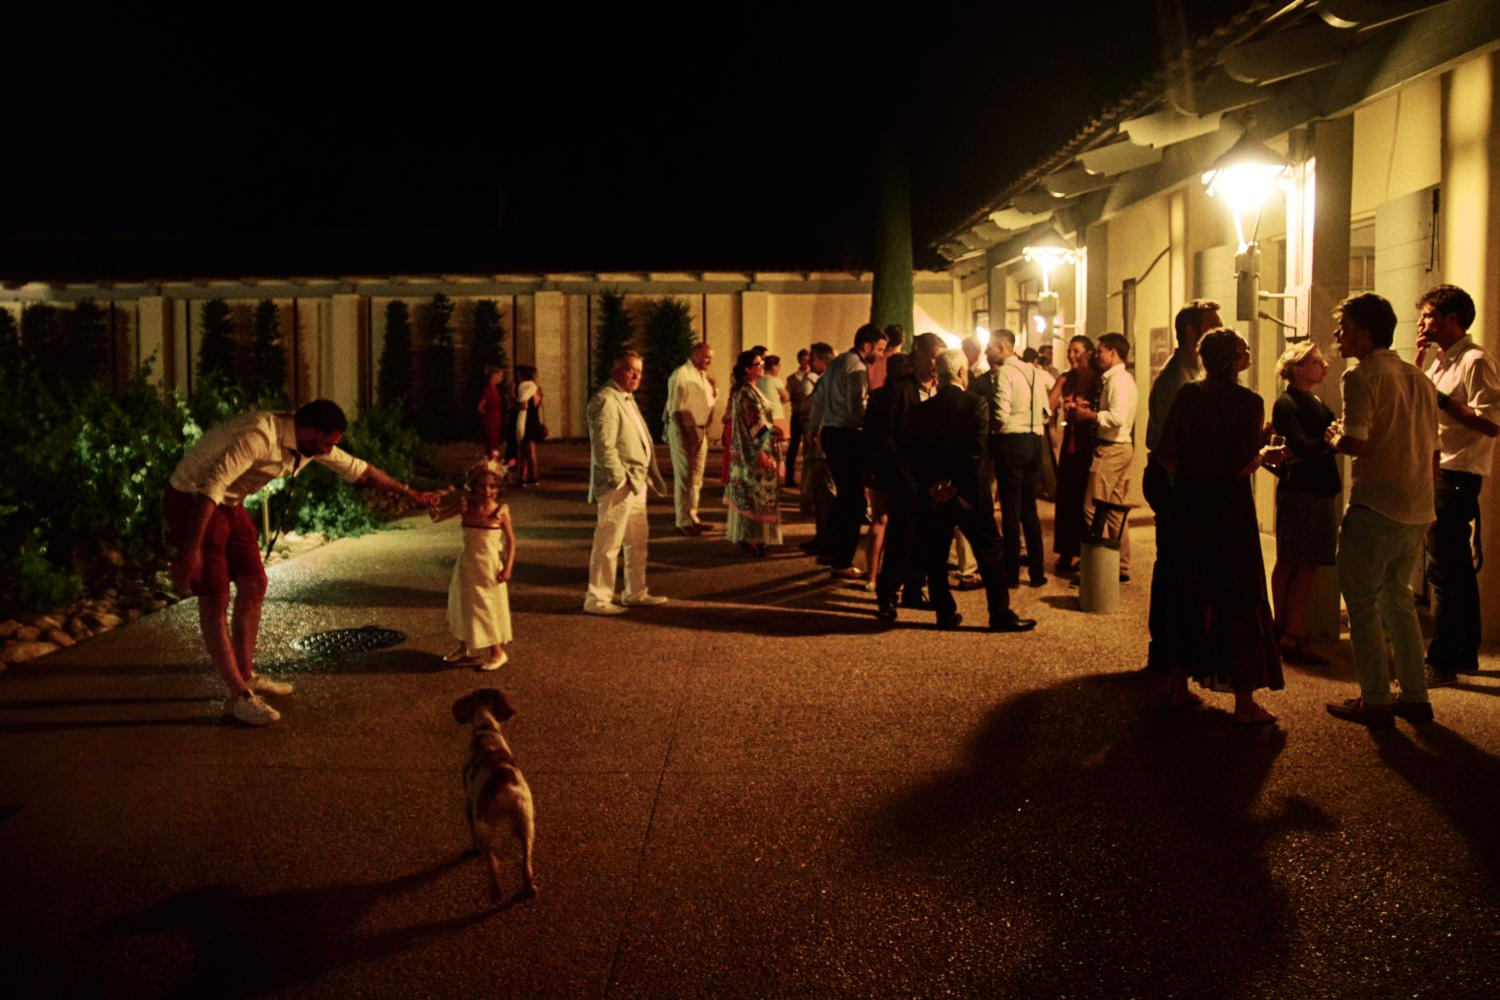 Late-night outdoor scene at Chateau Val Joanis with guests and a dog